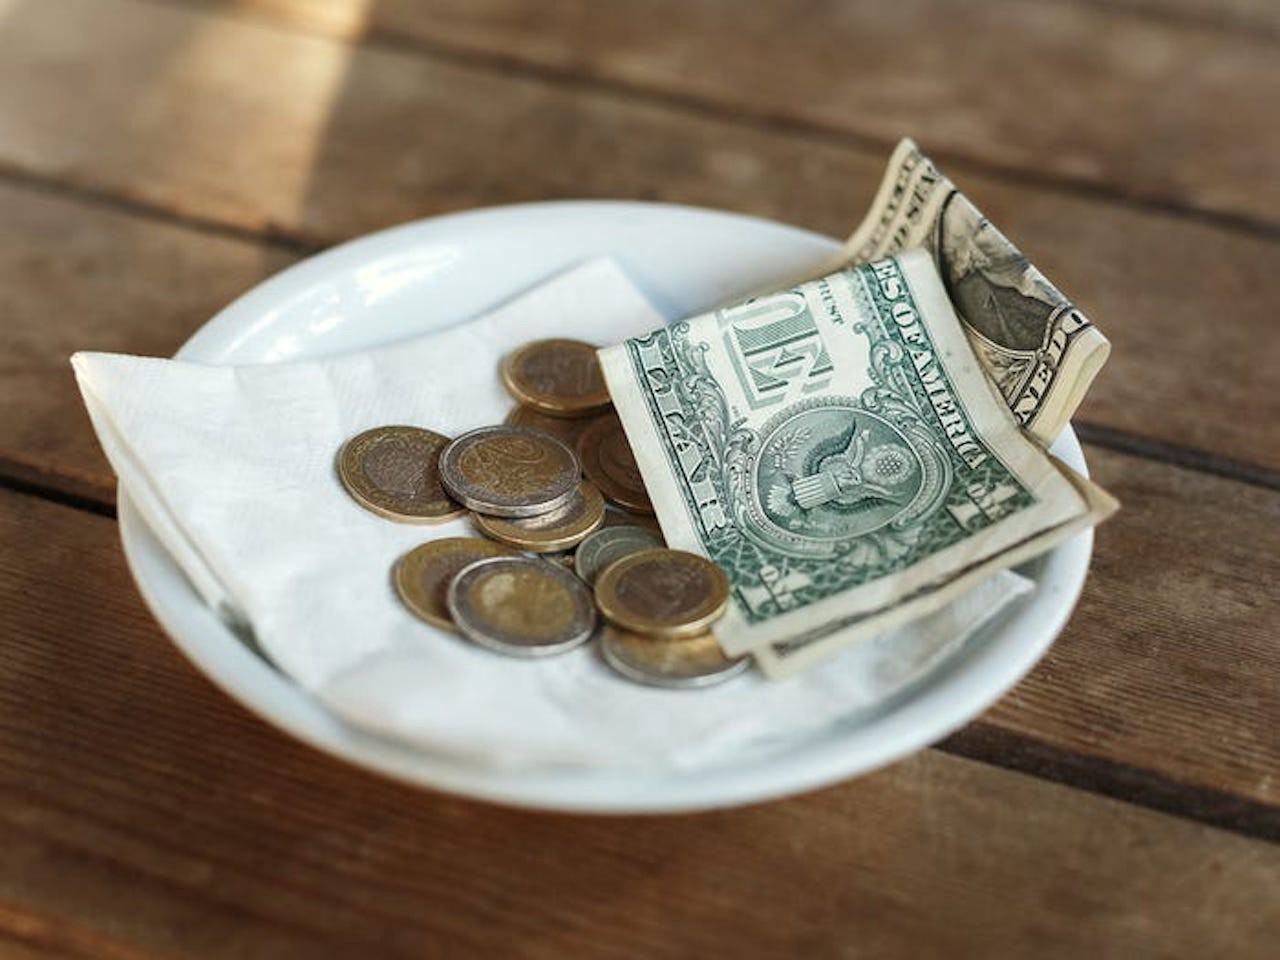 Money on a plate that was left as a tip.